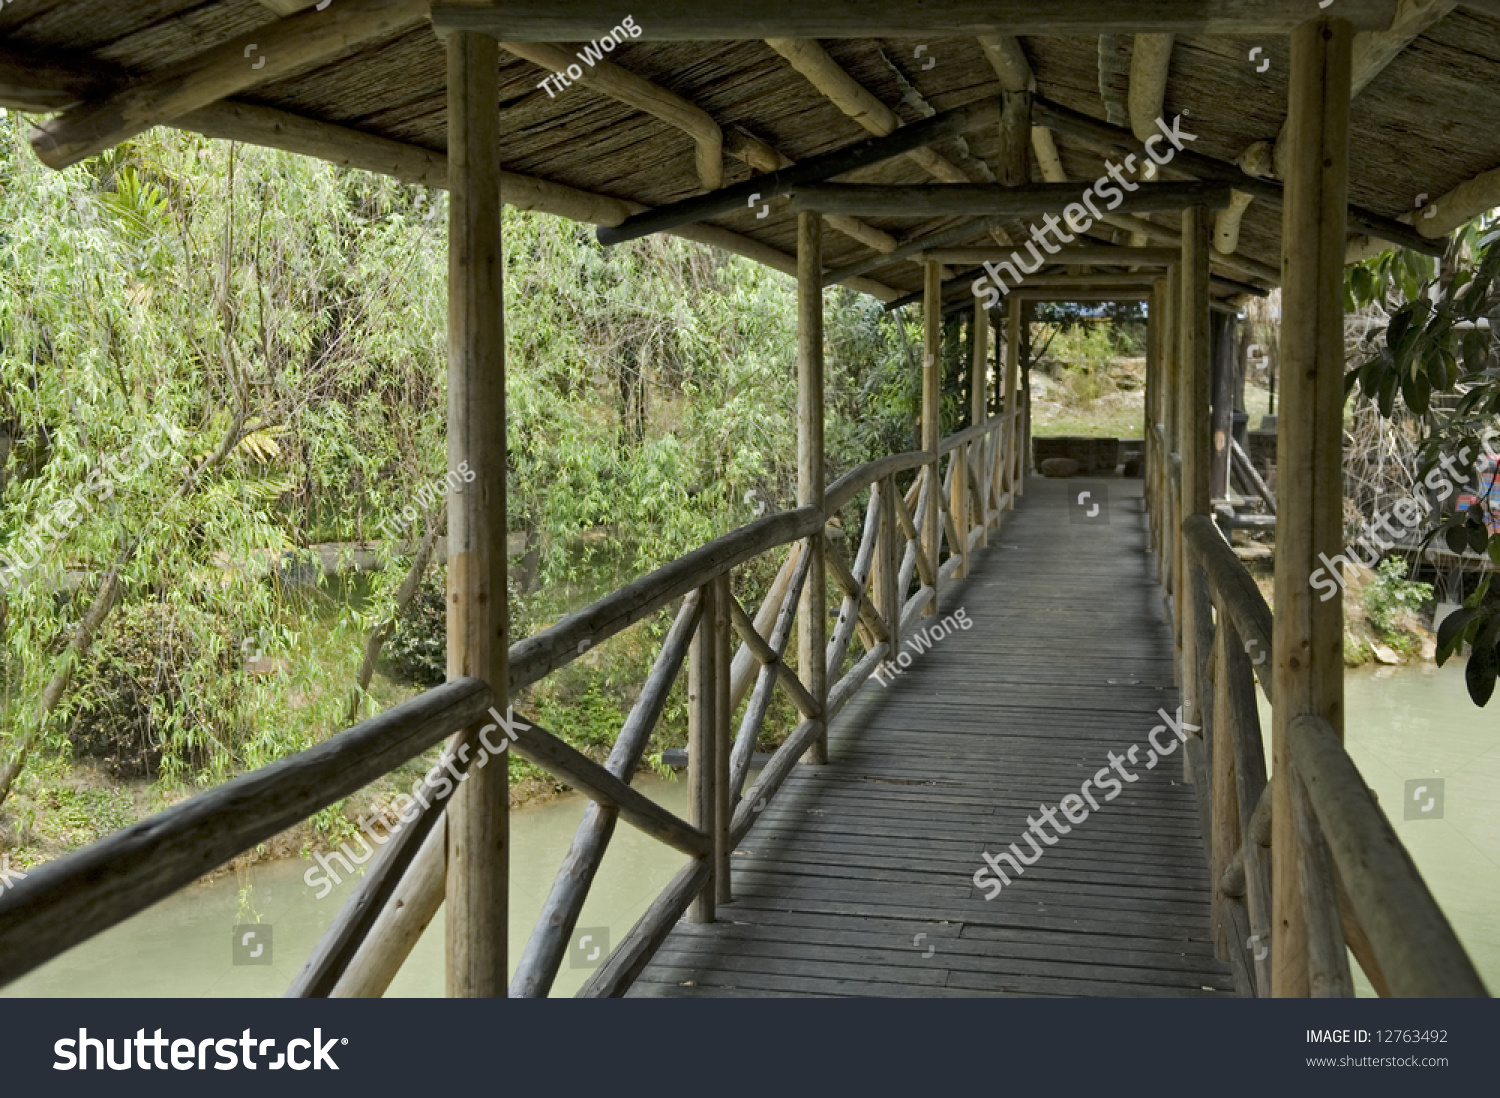 Over The Garden Walk: The Corridor Of Wooden Walk Bridge Over Lake In Garden